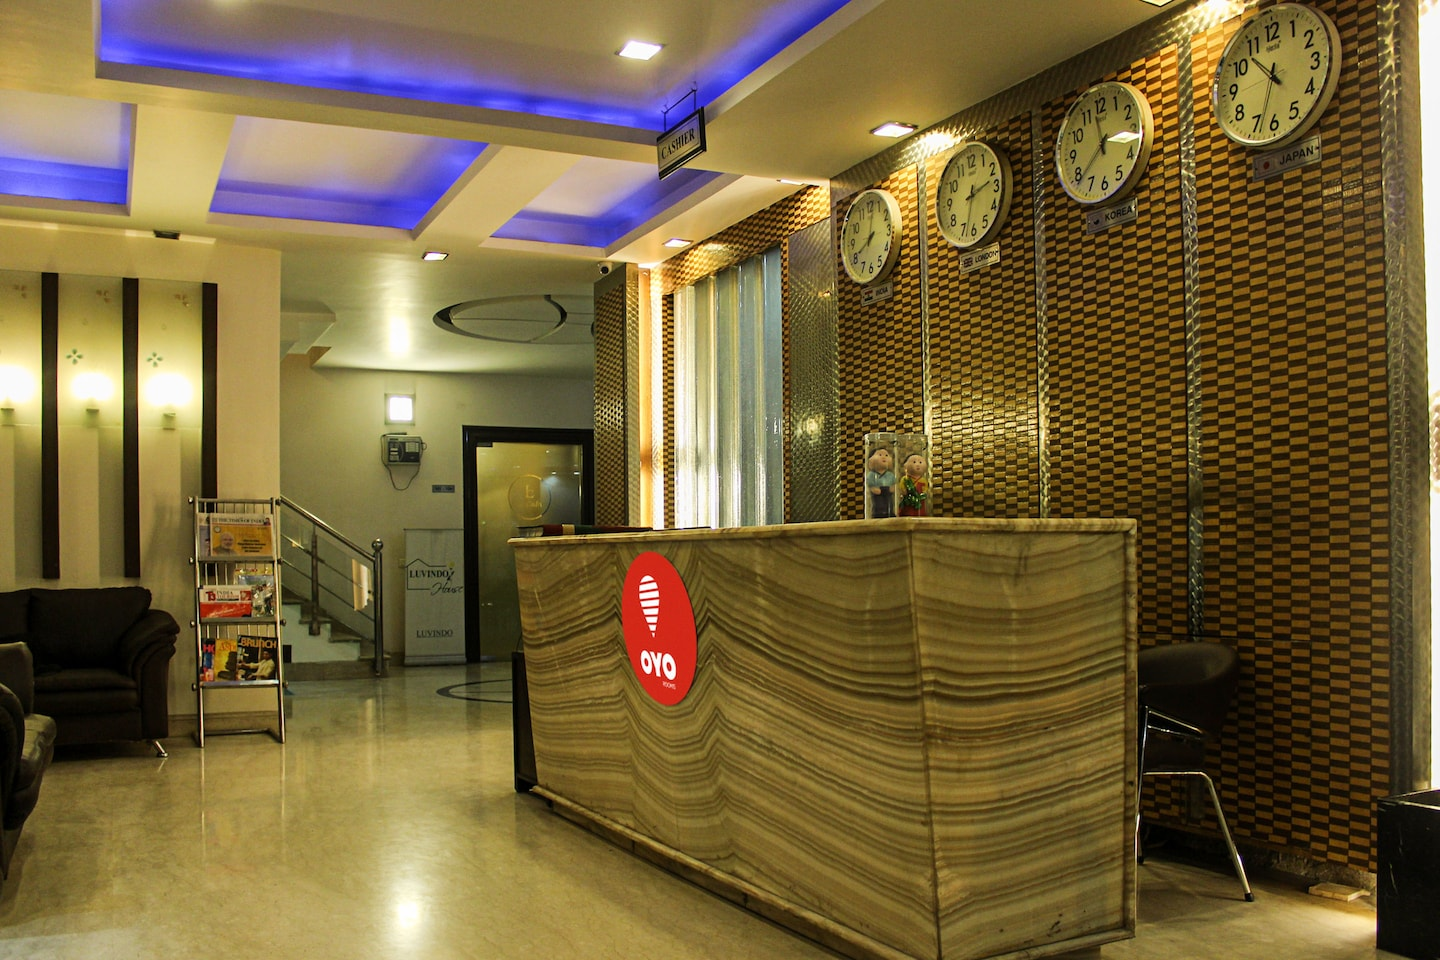 OYO Rooms 126 East of Kailash Reception-1